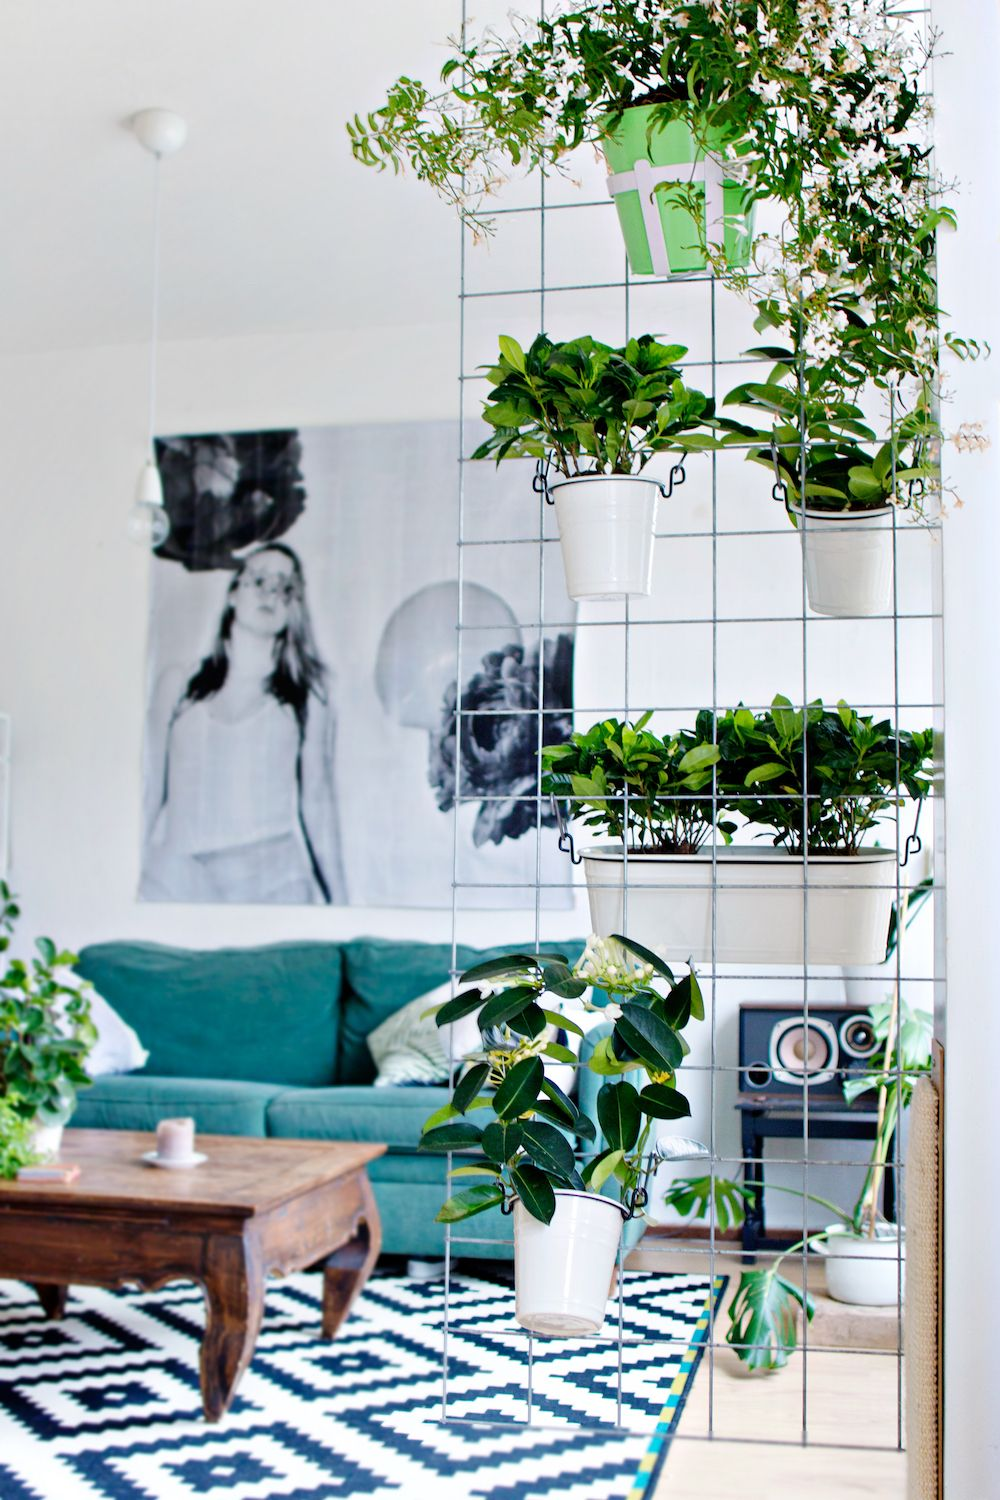 15 Indoor Garden Ideas for Wannabe Gardeners in Small Spaces | Space ...